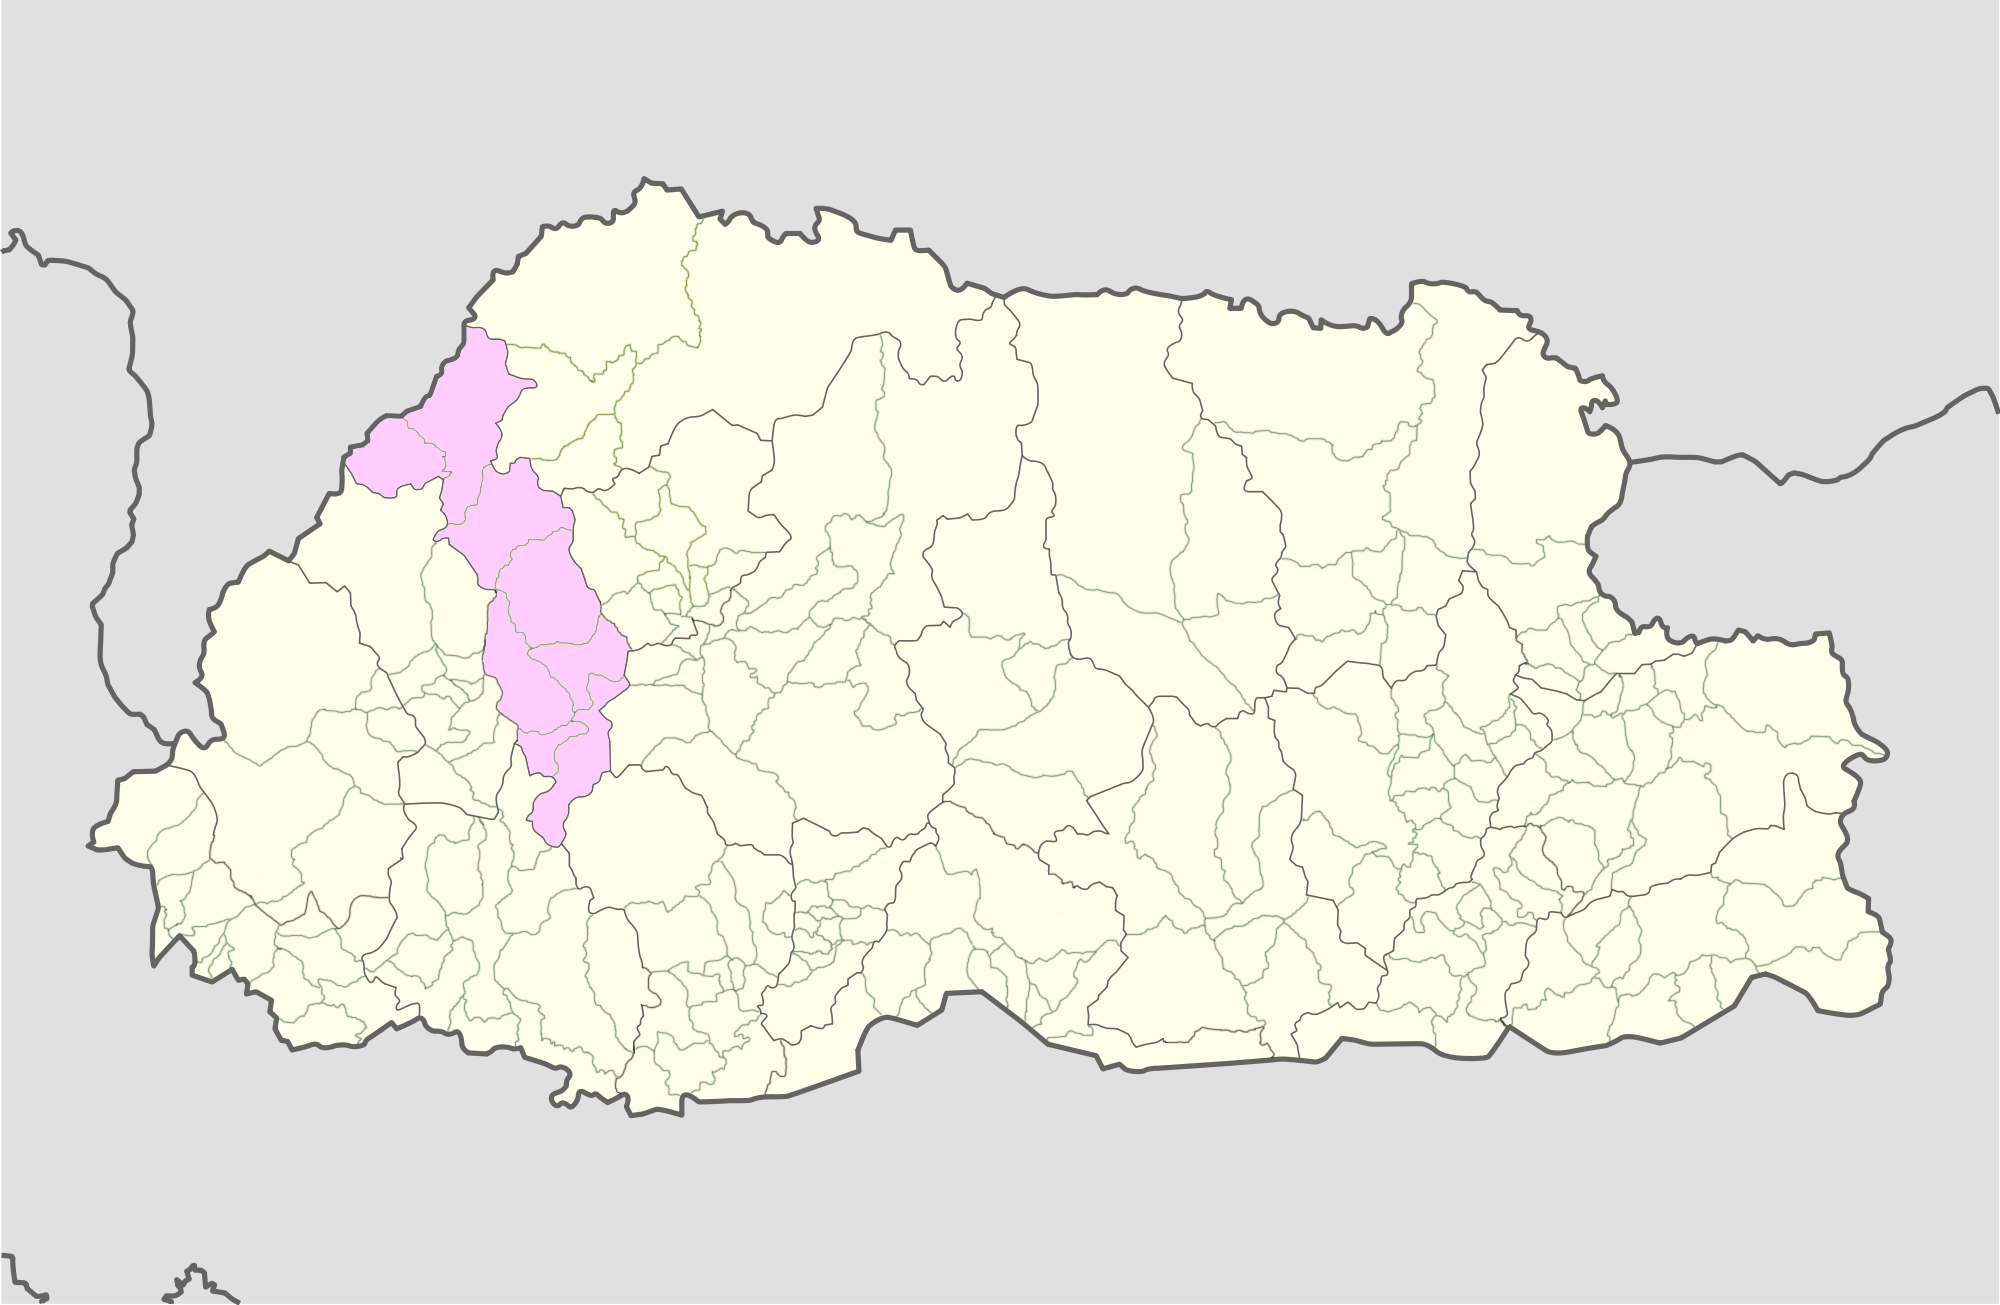 FileThimphu Bhutan location mappng Wikimedia Commons